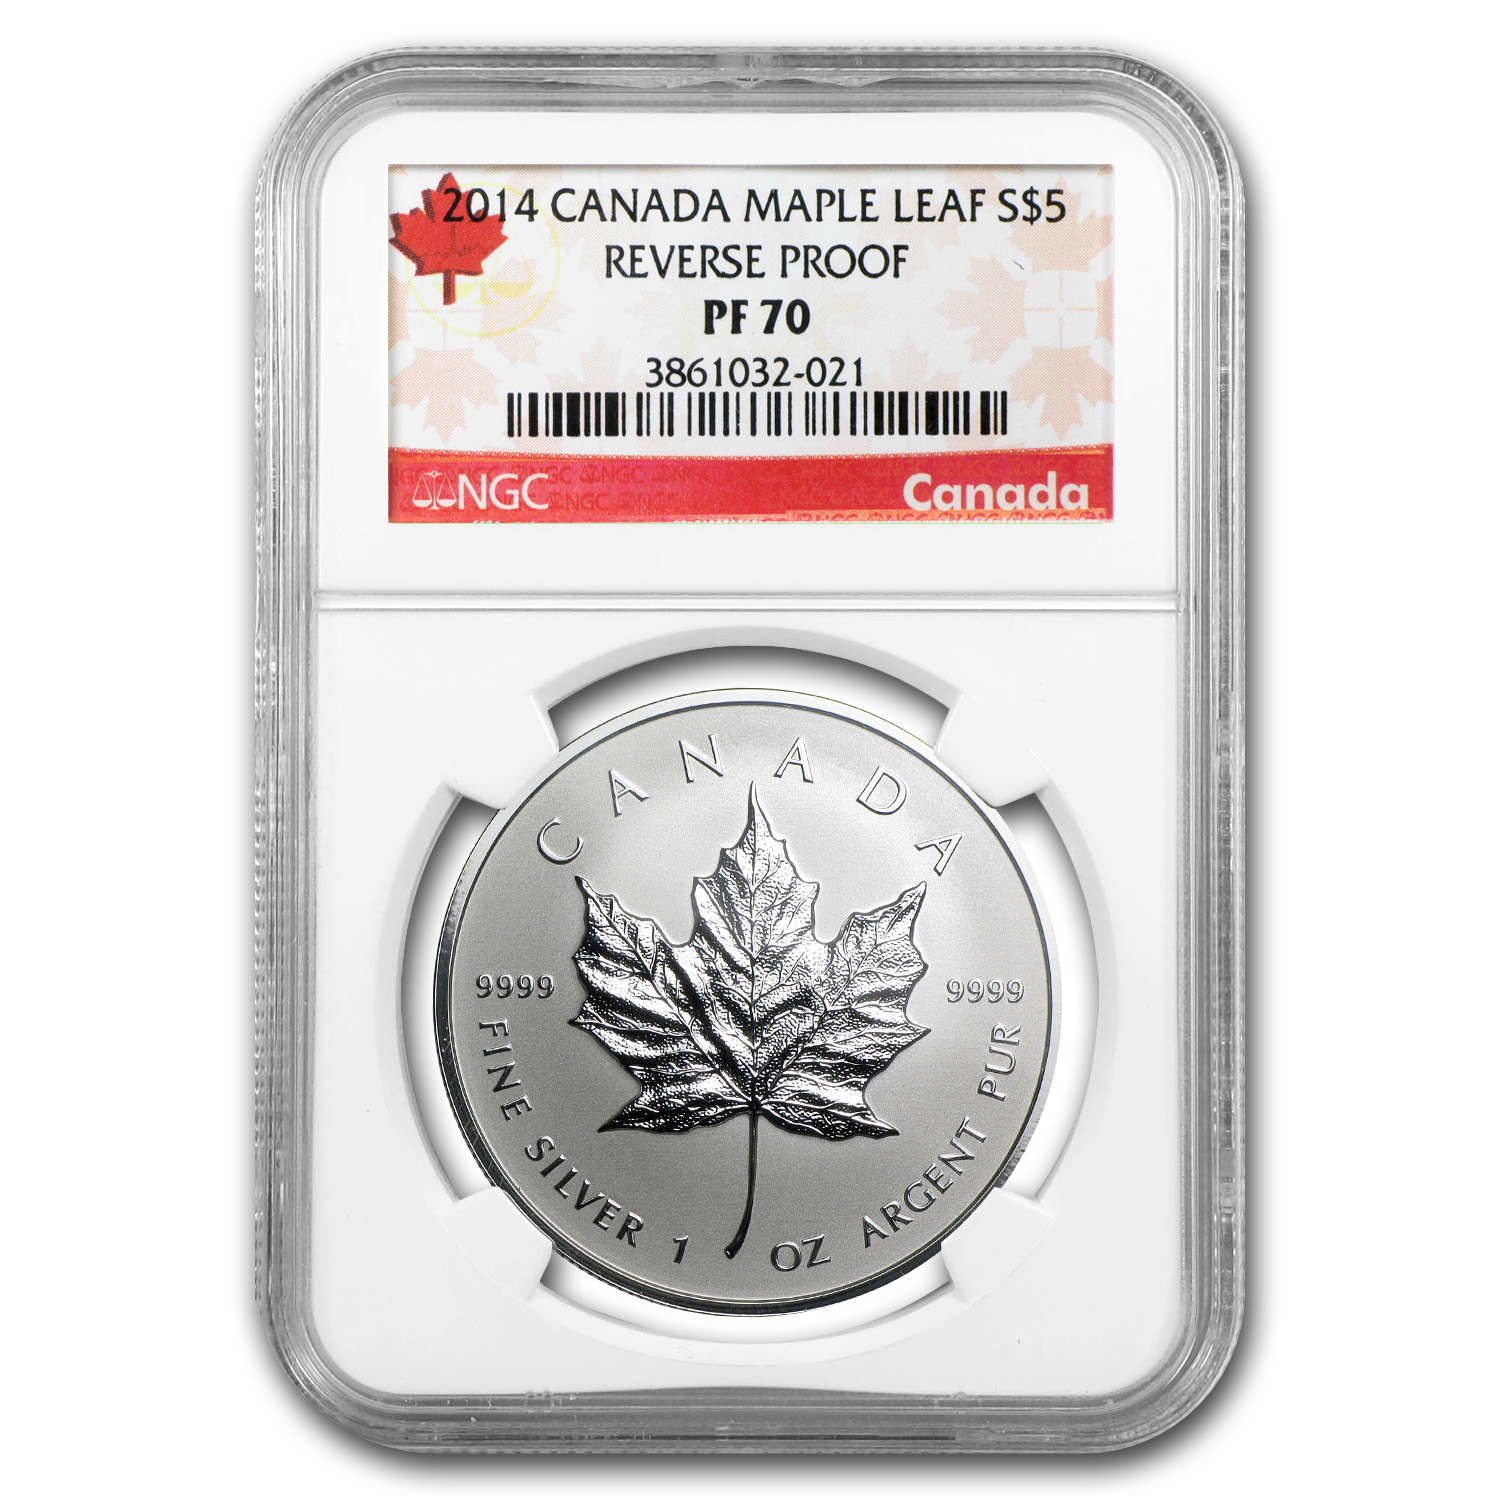 2014 Canada 1 oz Reverse Proof Silver Maple Leaf PF-70 NGC